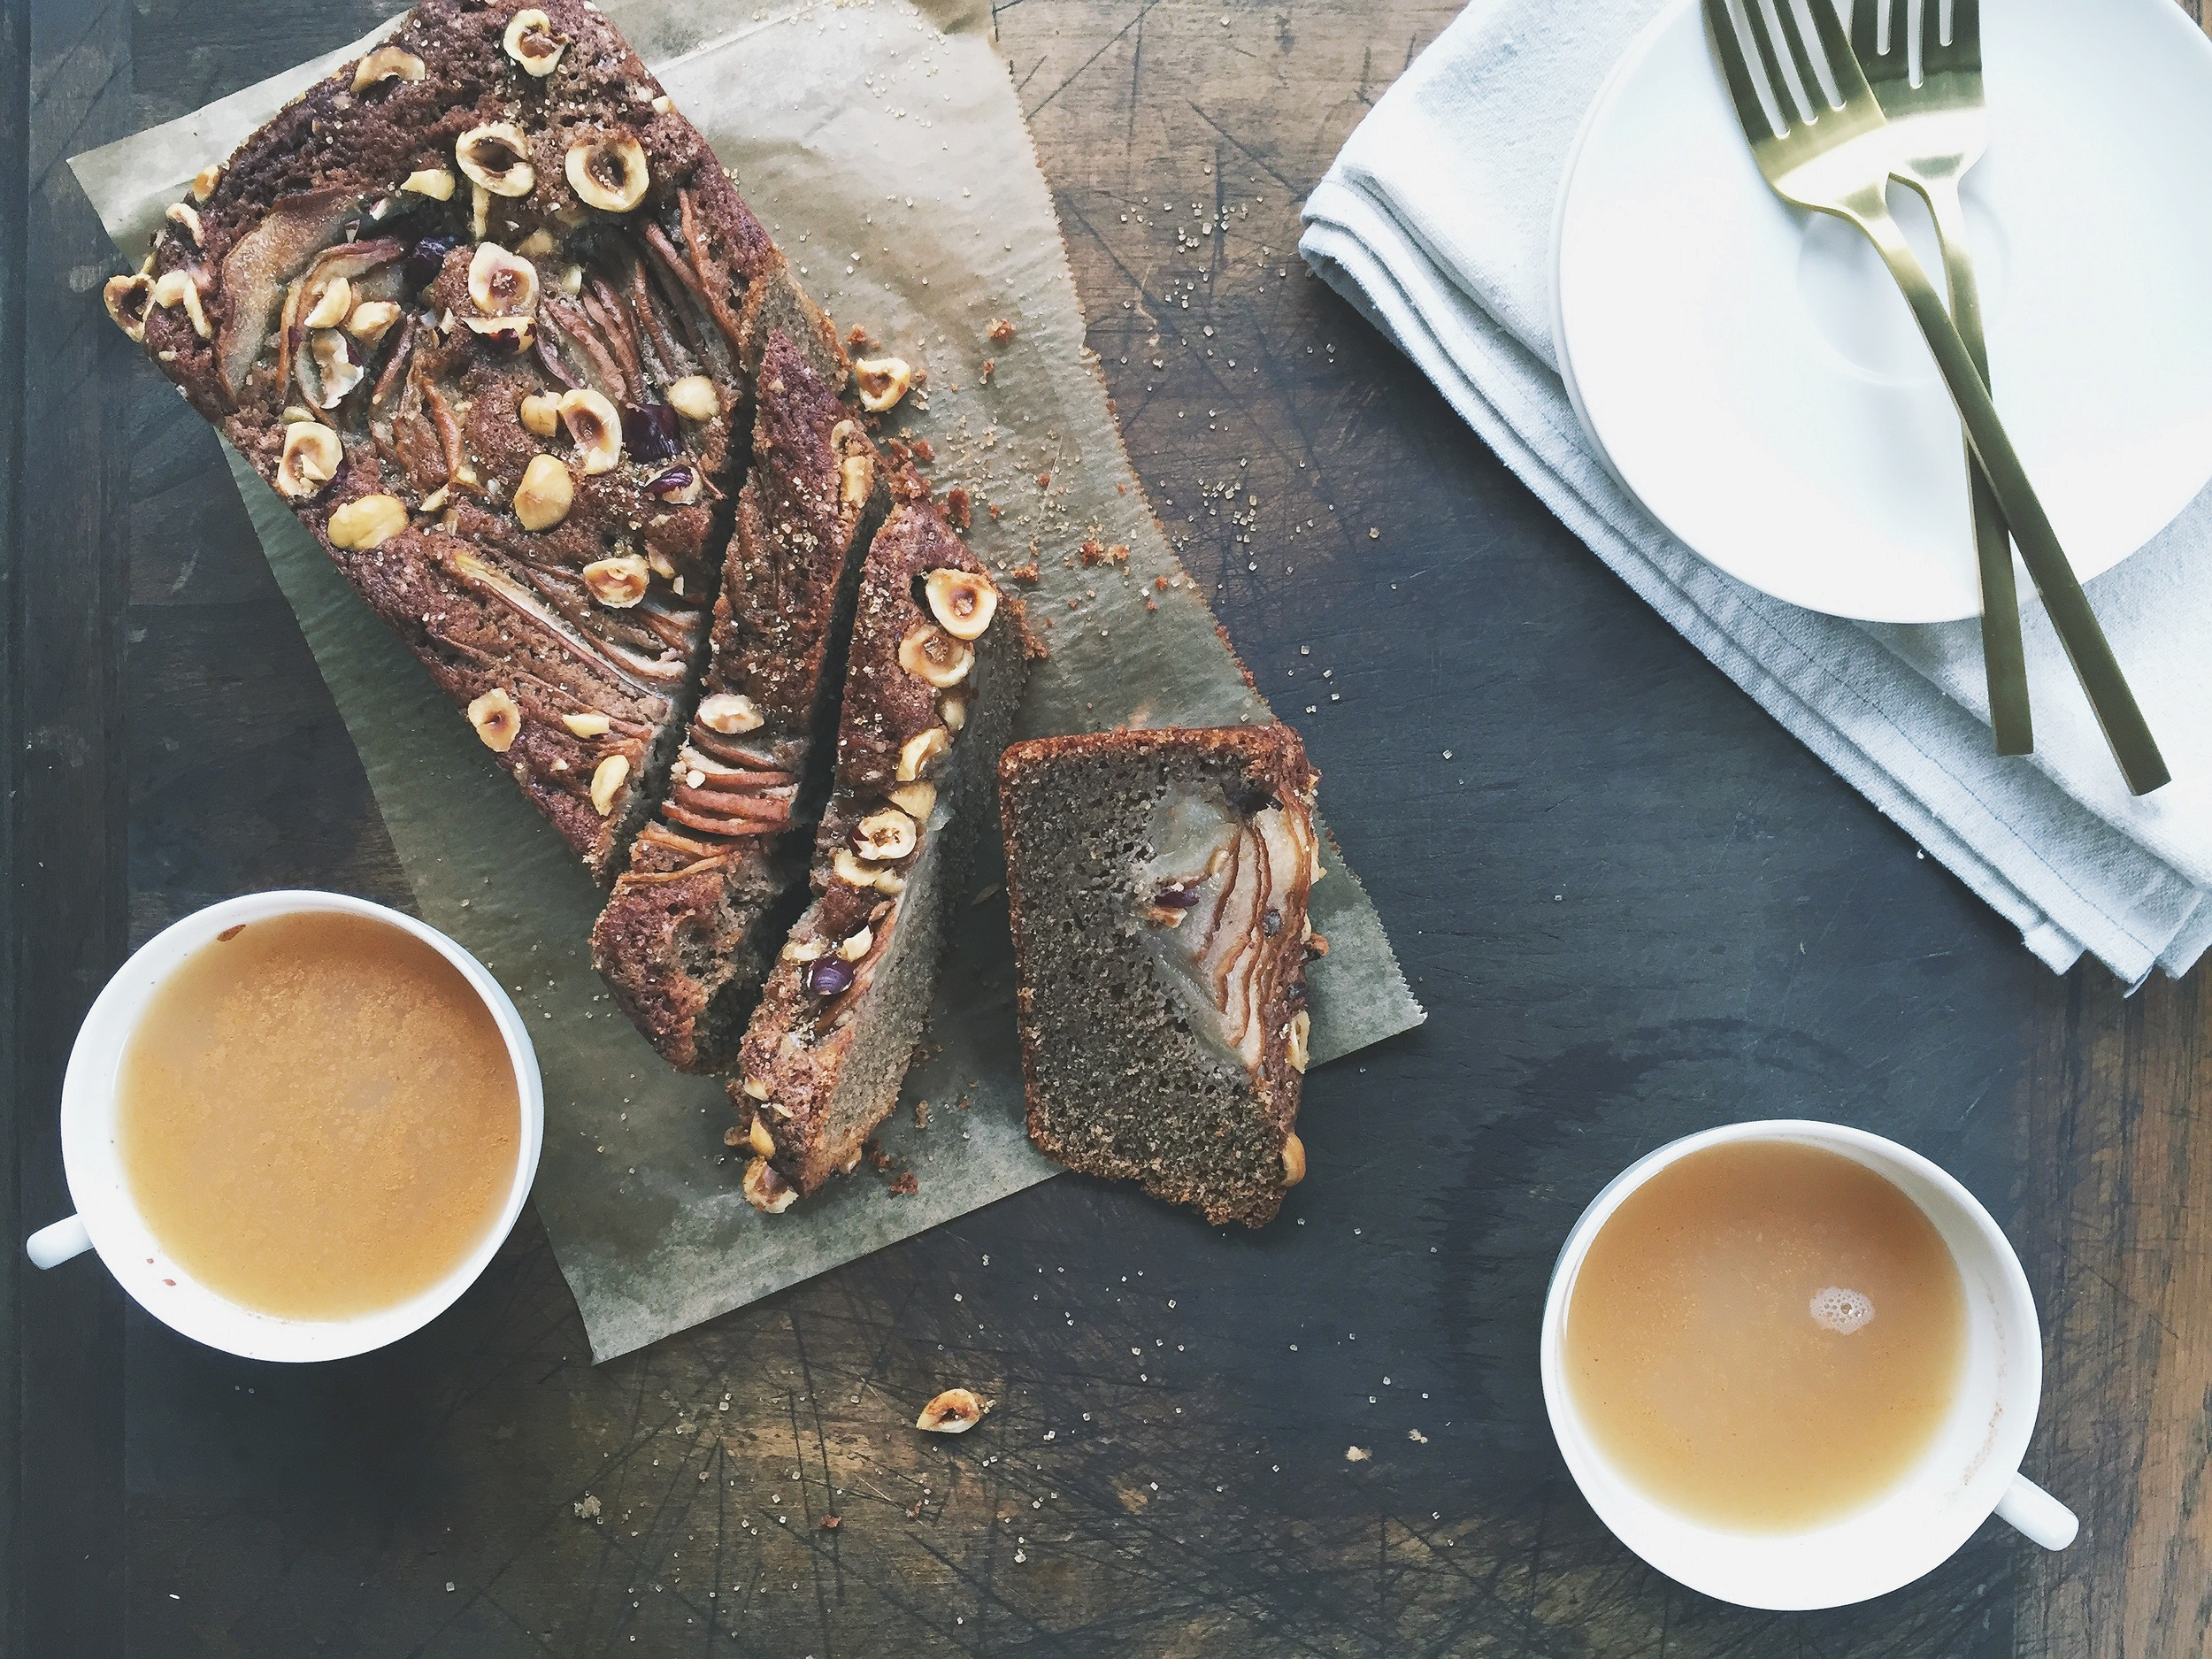 Spiced Pear Cake with Hazelnuts | All Purpose Flour Child